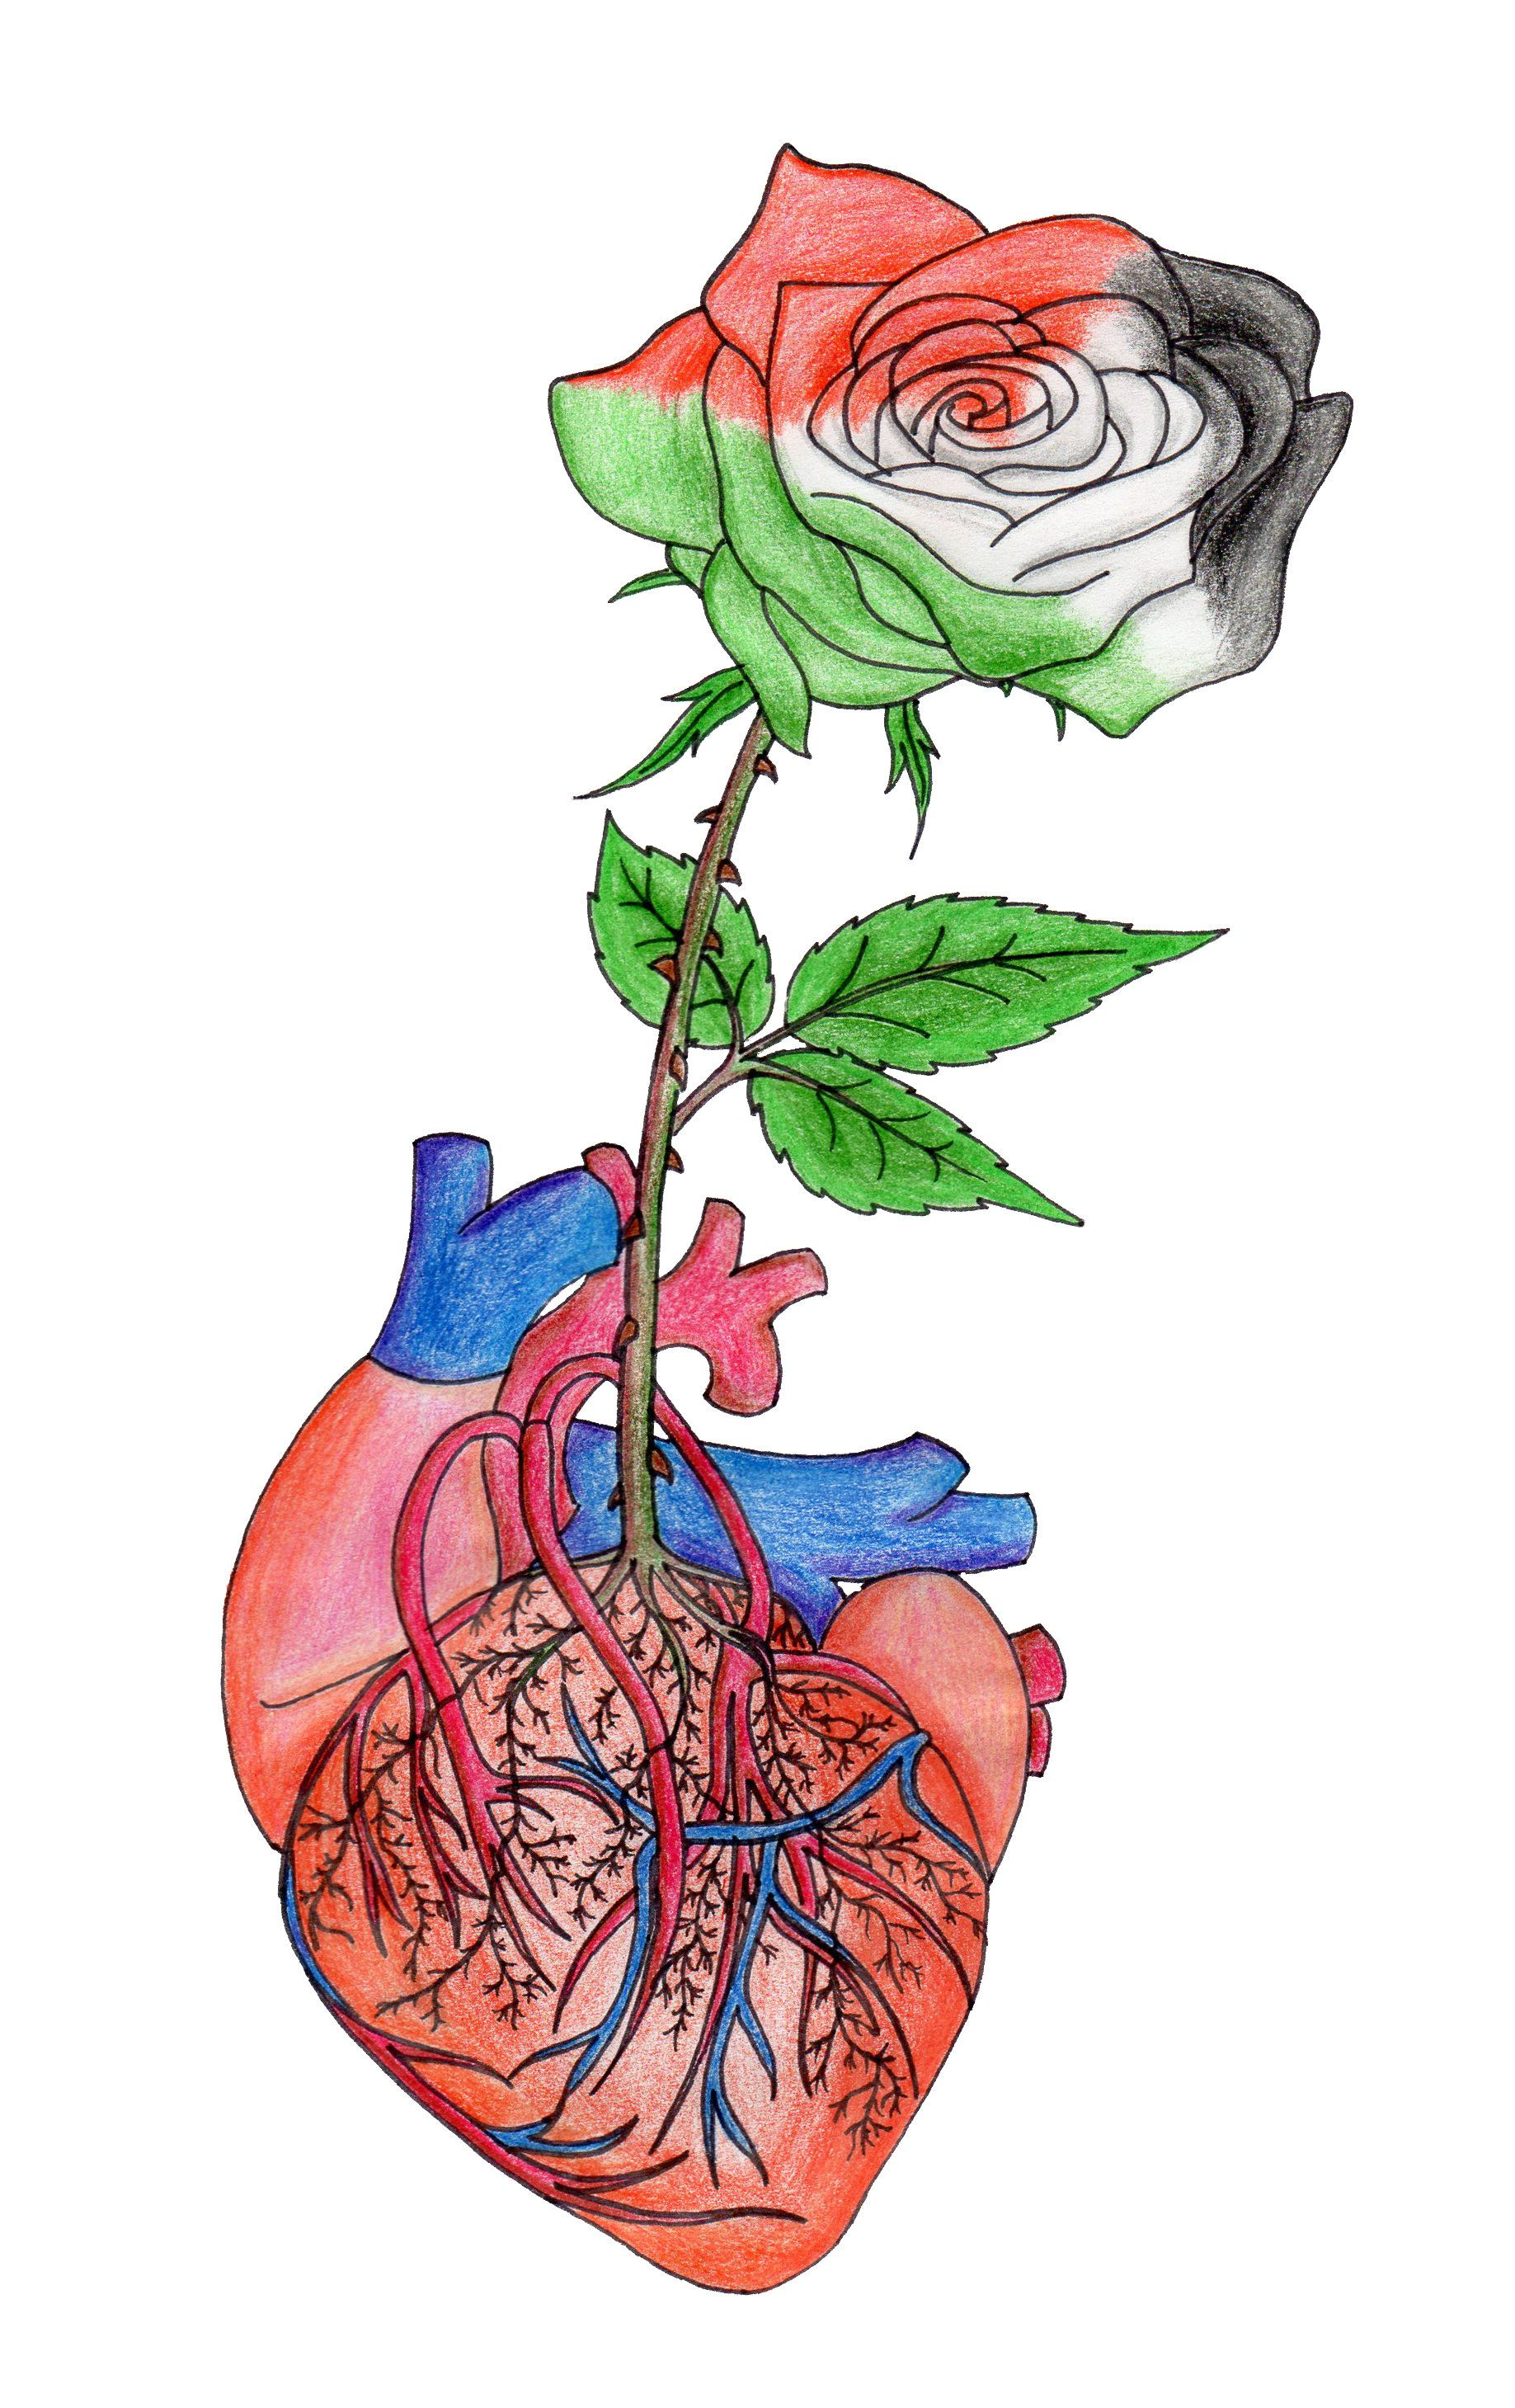 A rose sprouts on my heart... by floatingWhiteFalcon.deviantart.com on @deviantART